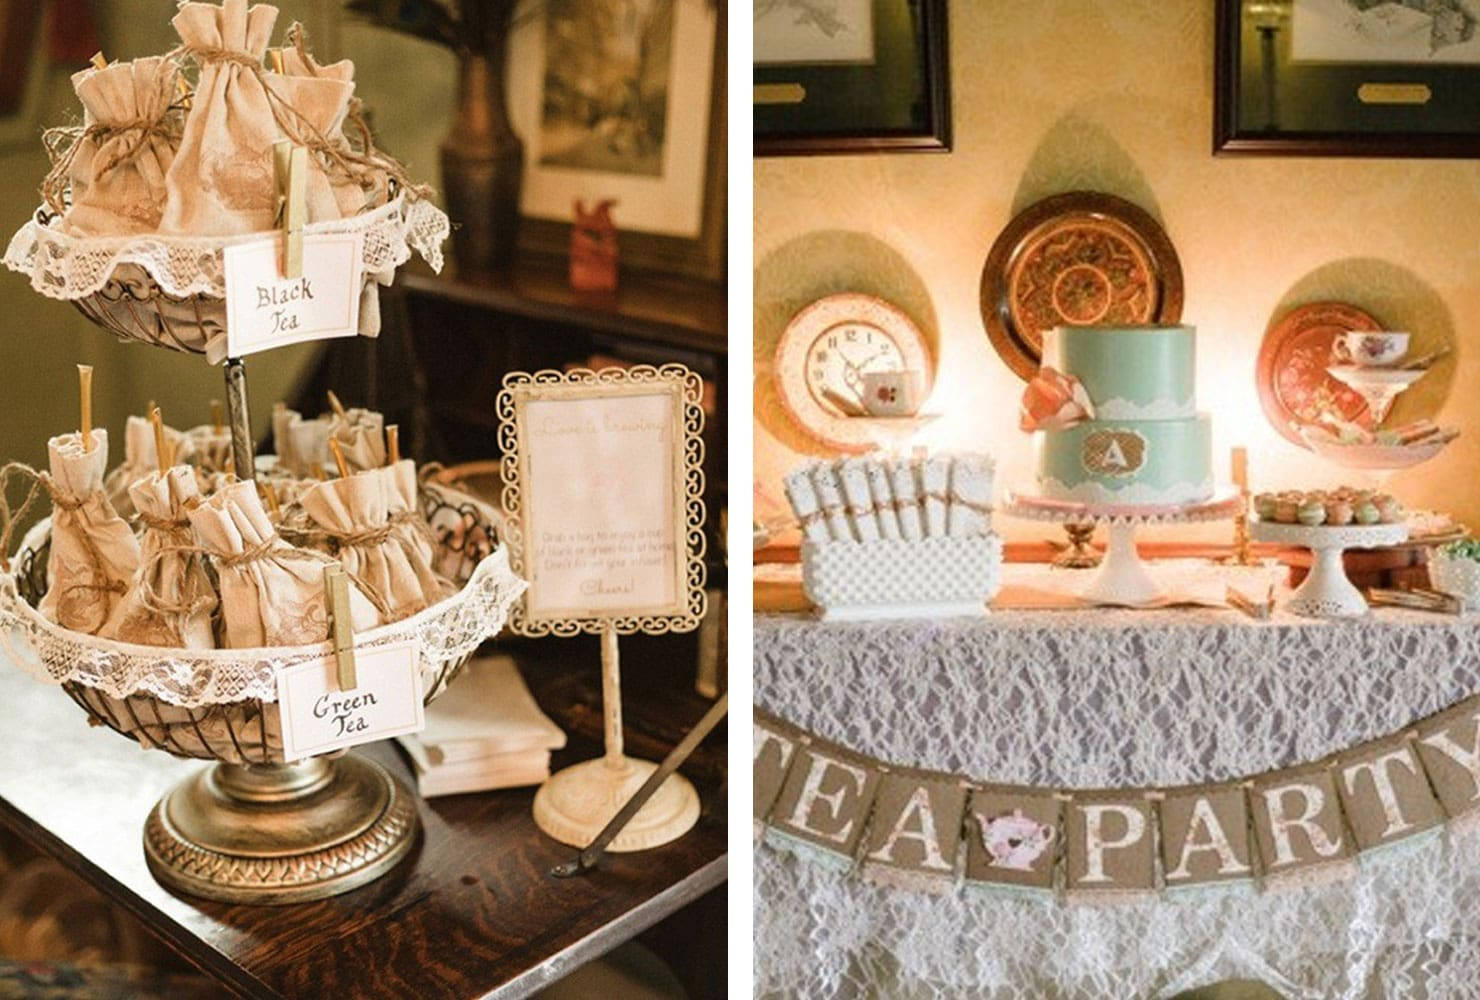 Tea party table with burlap and white lace accents